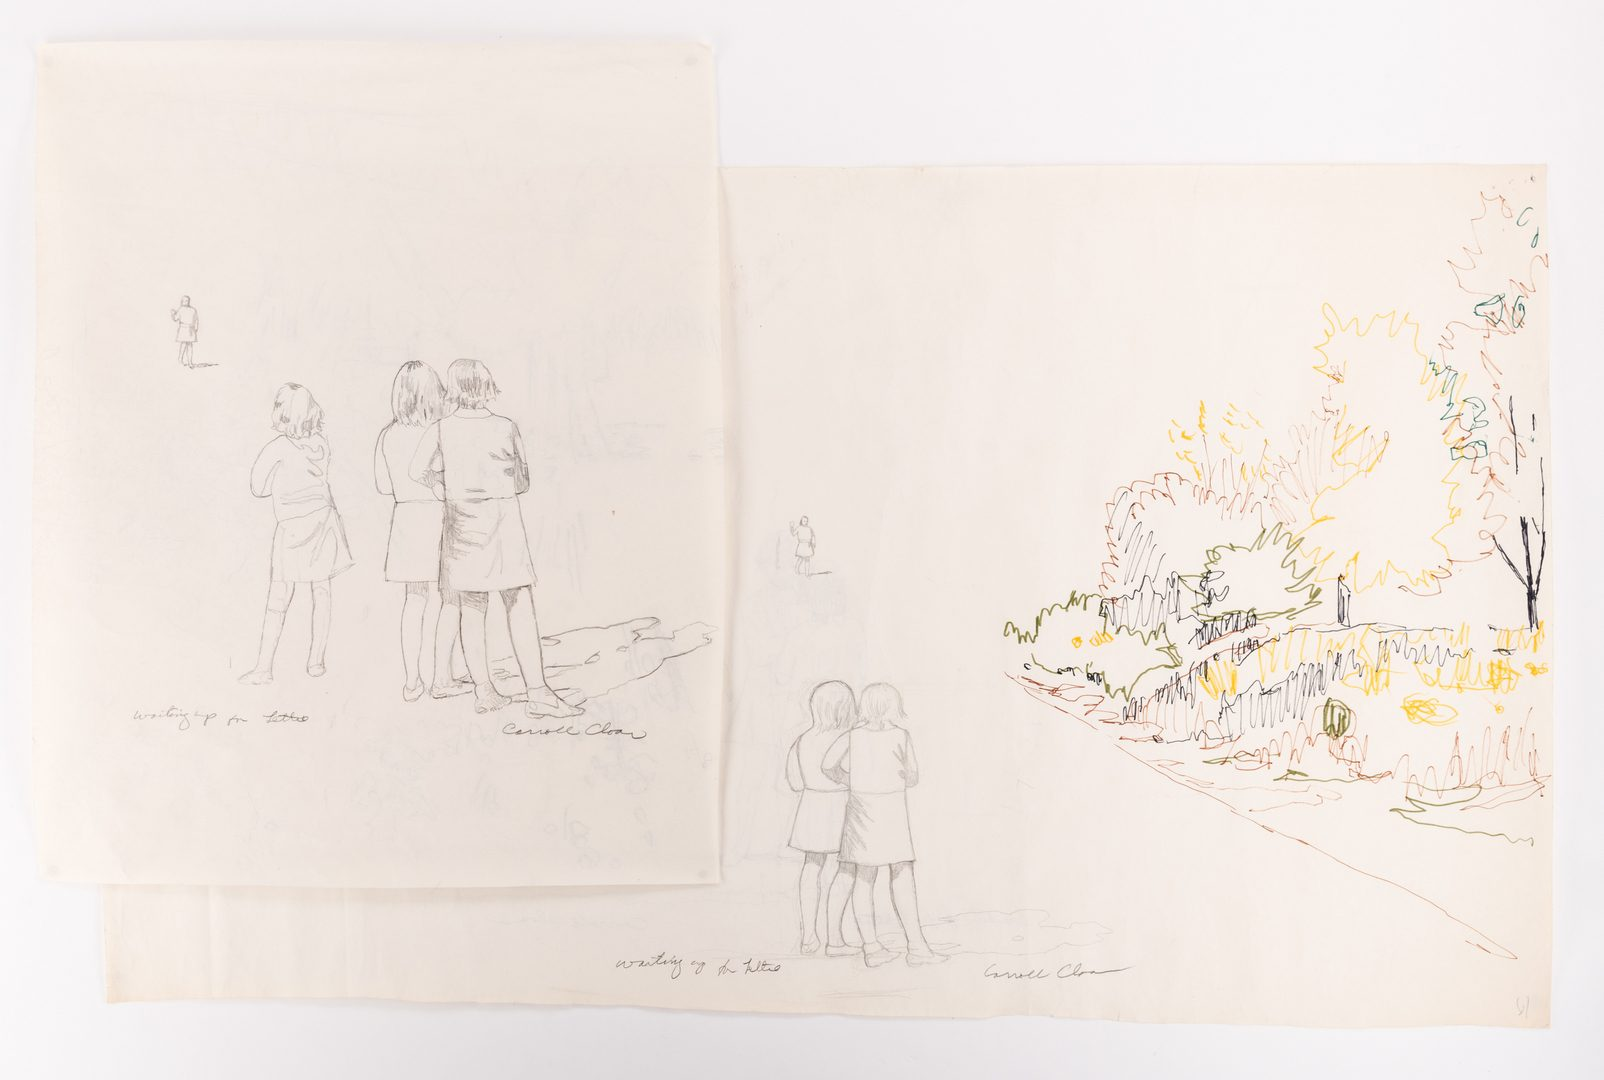 Lot 128: 2 Carroll Cloar Drawings, Waiting Up for Lettie